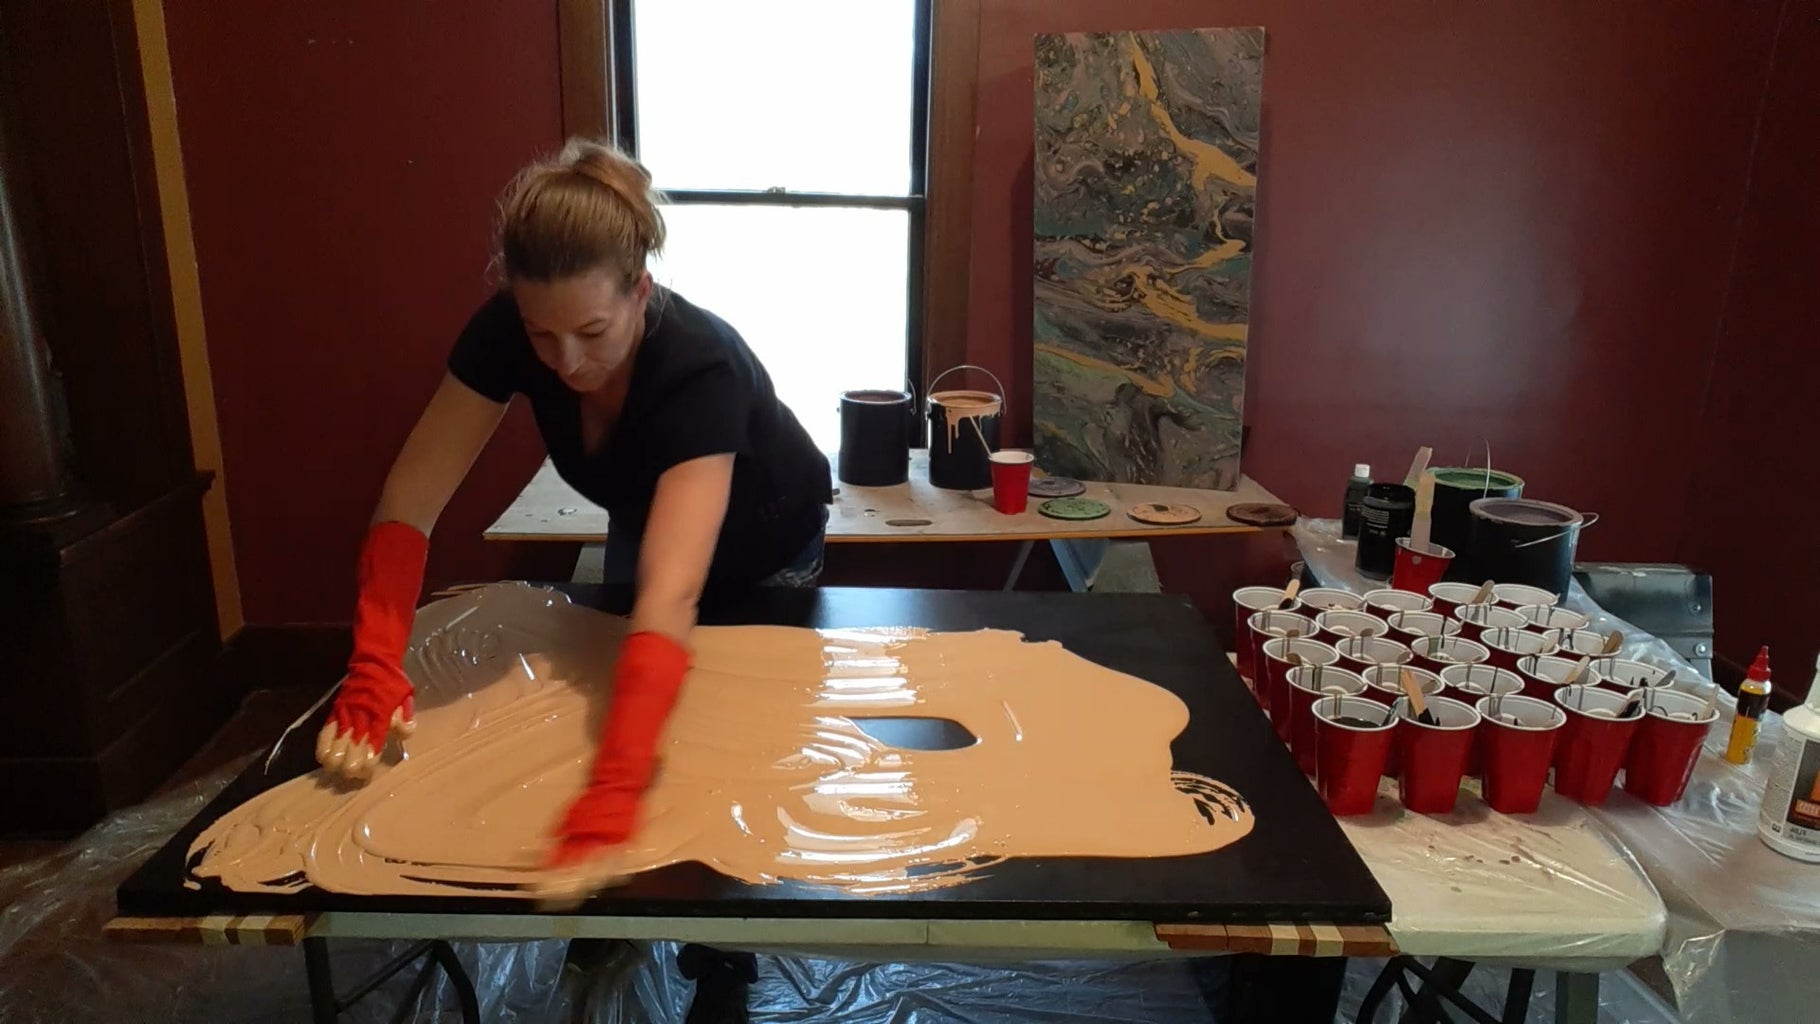 Level the Canvas on the Table.  Cover the Entire Canvas With One Color of Paint.